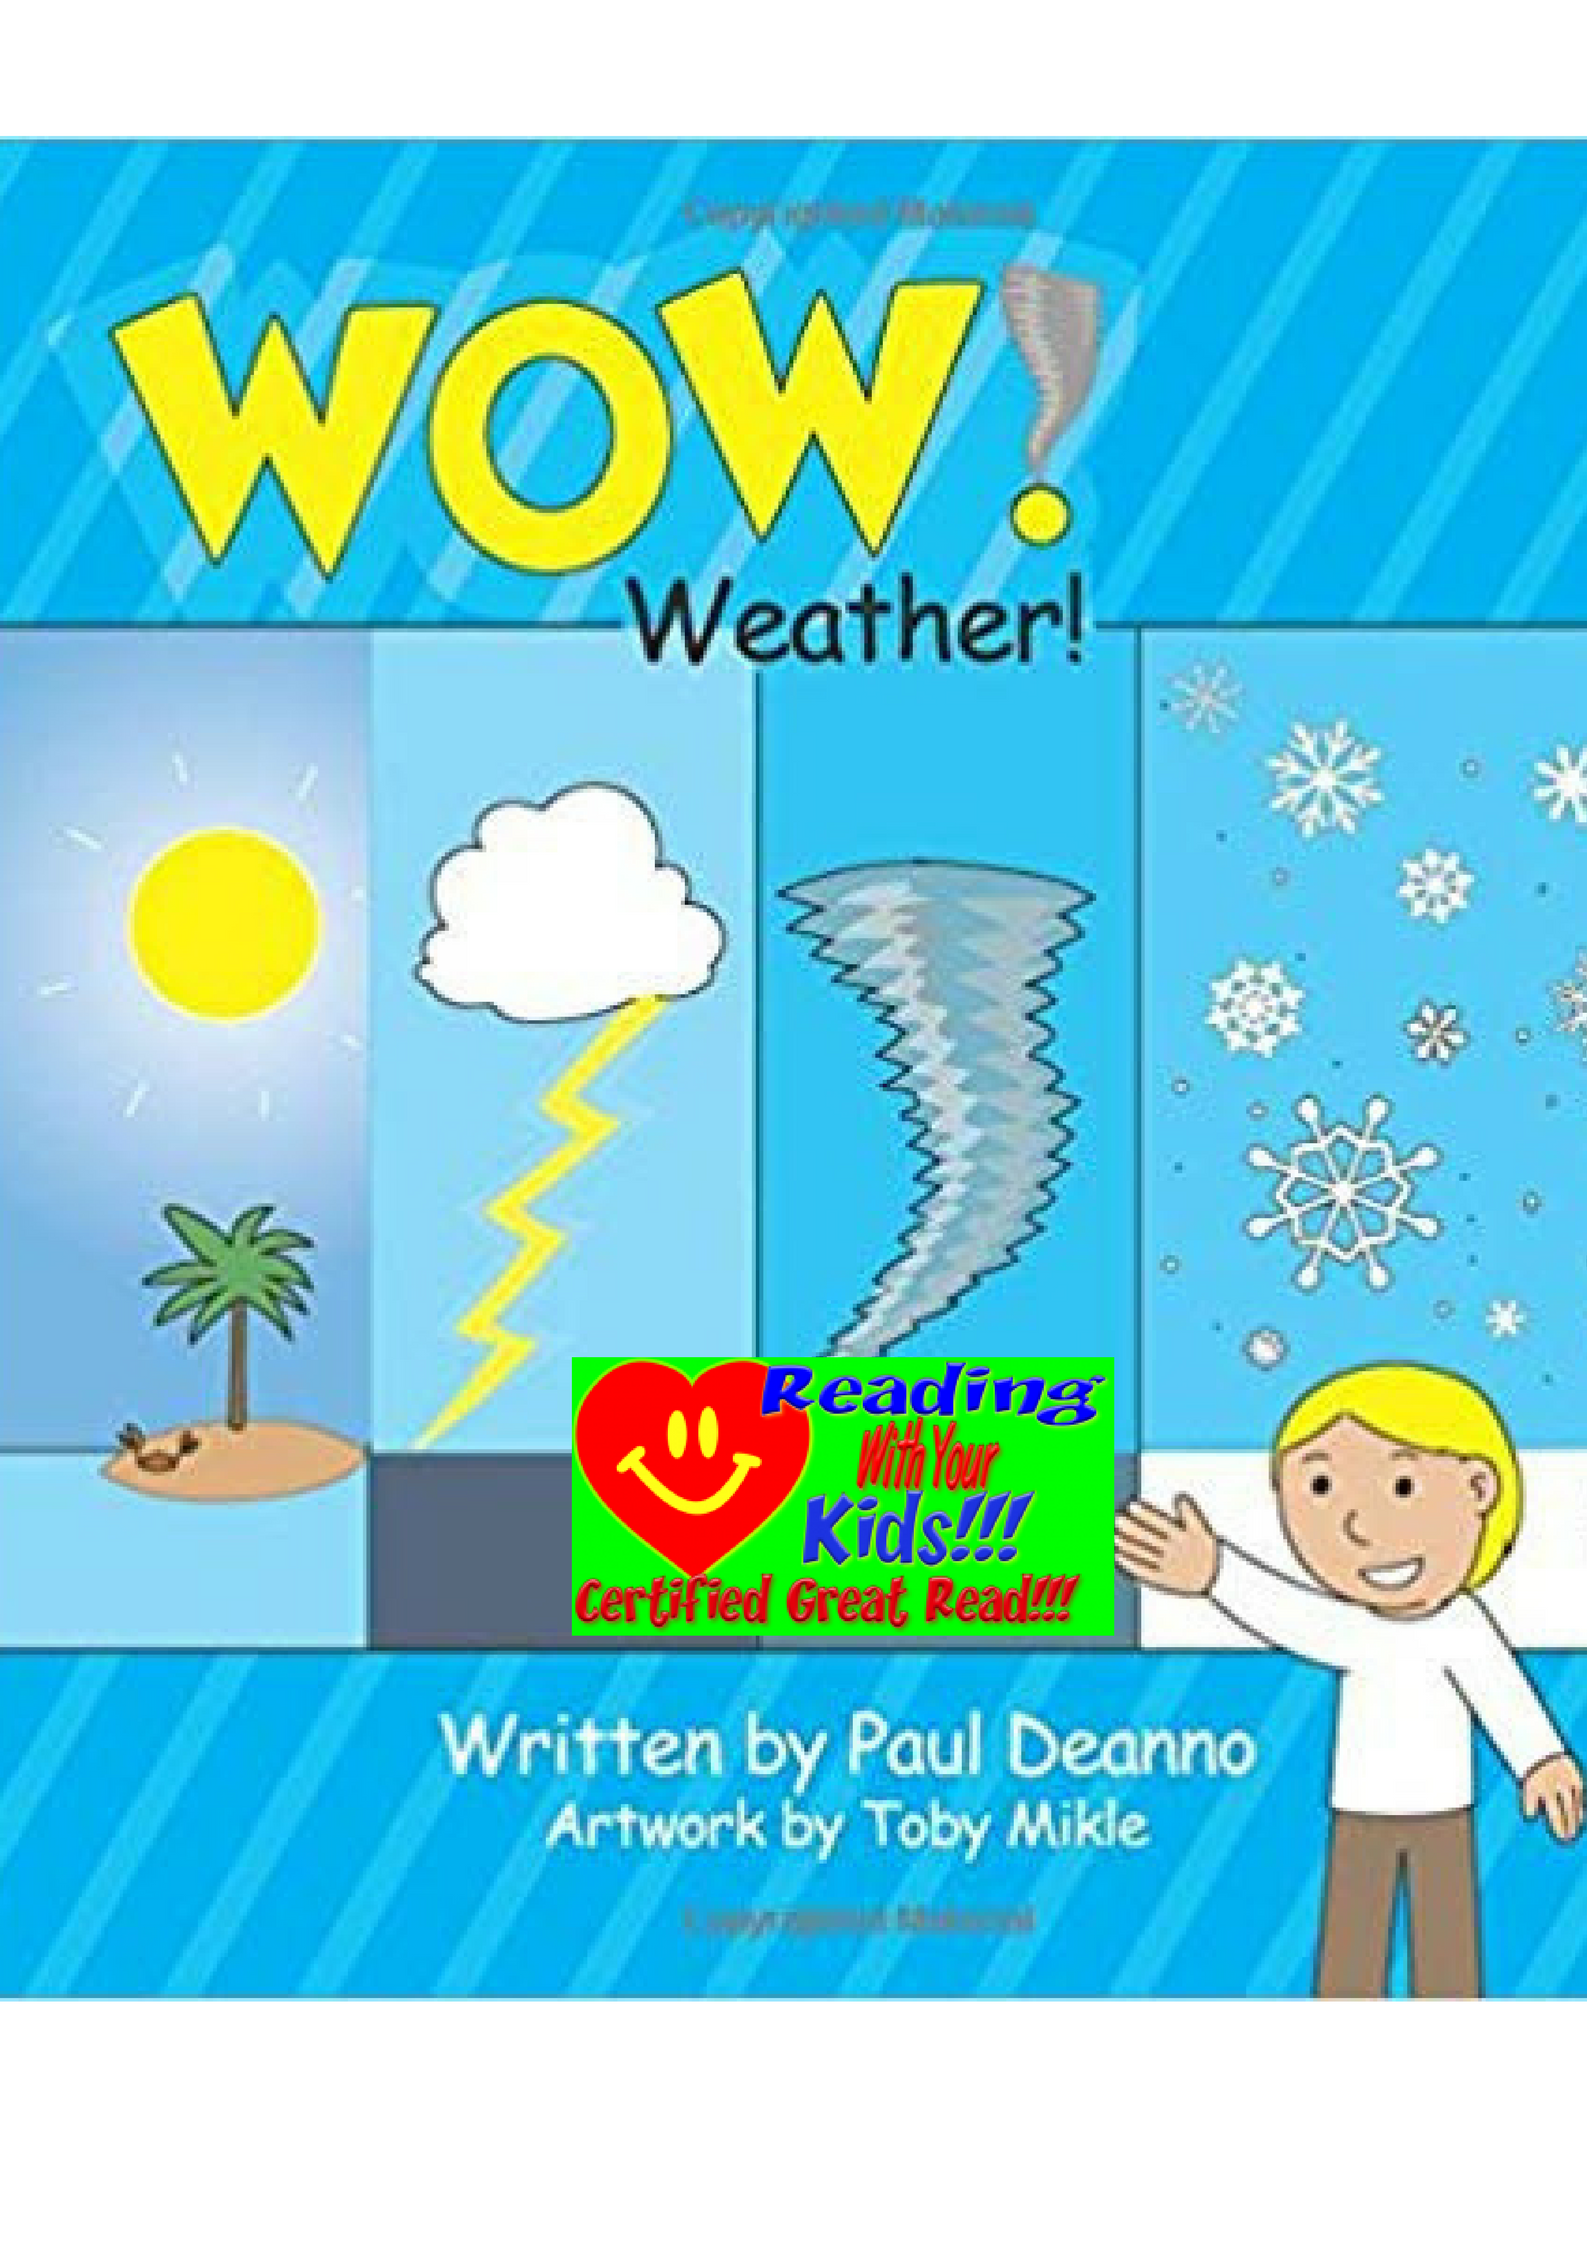 """WOW! Weather!"" by Paul Deanno: #RWYK Certified Great Read"